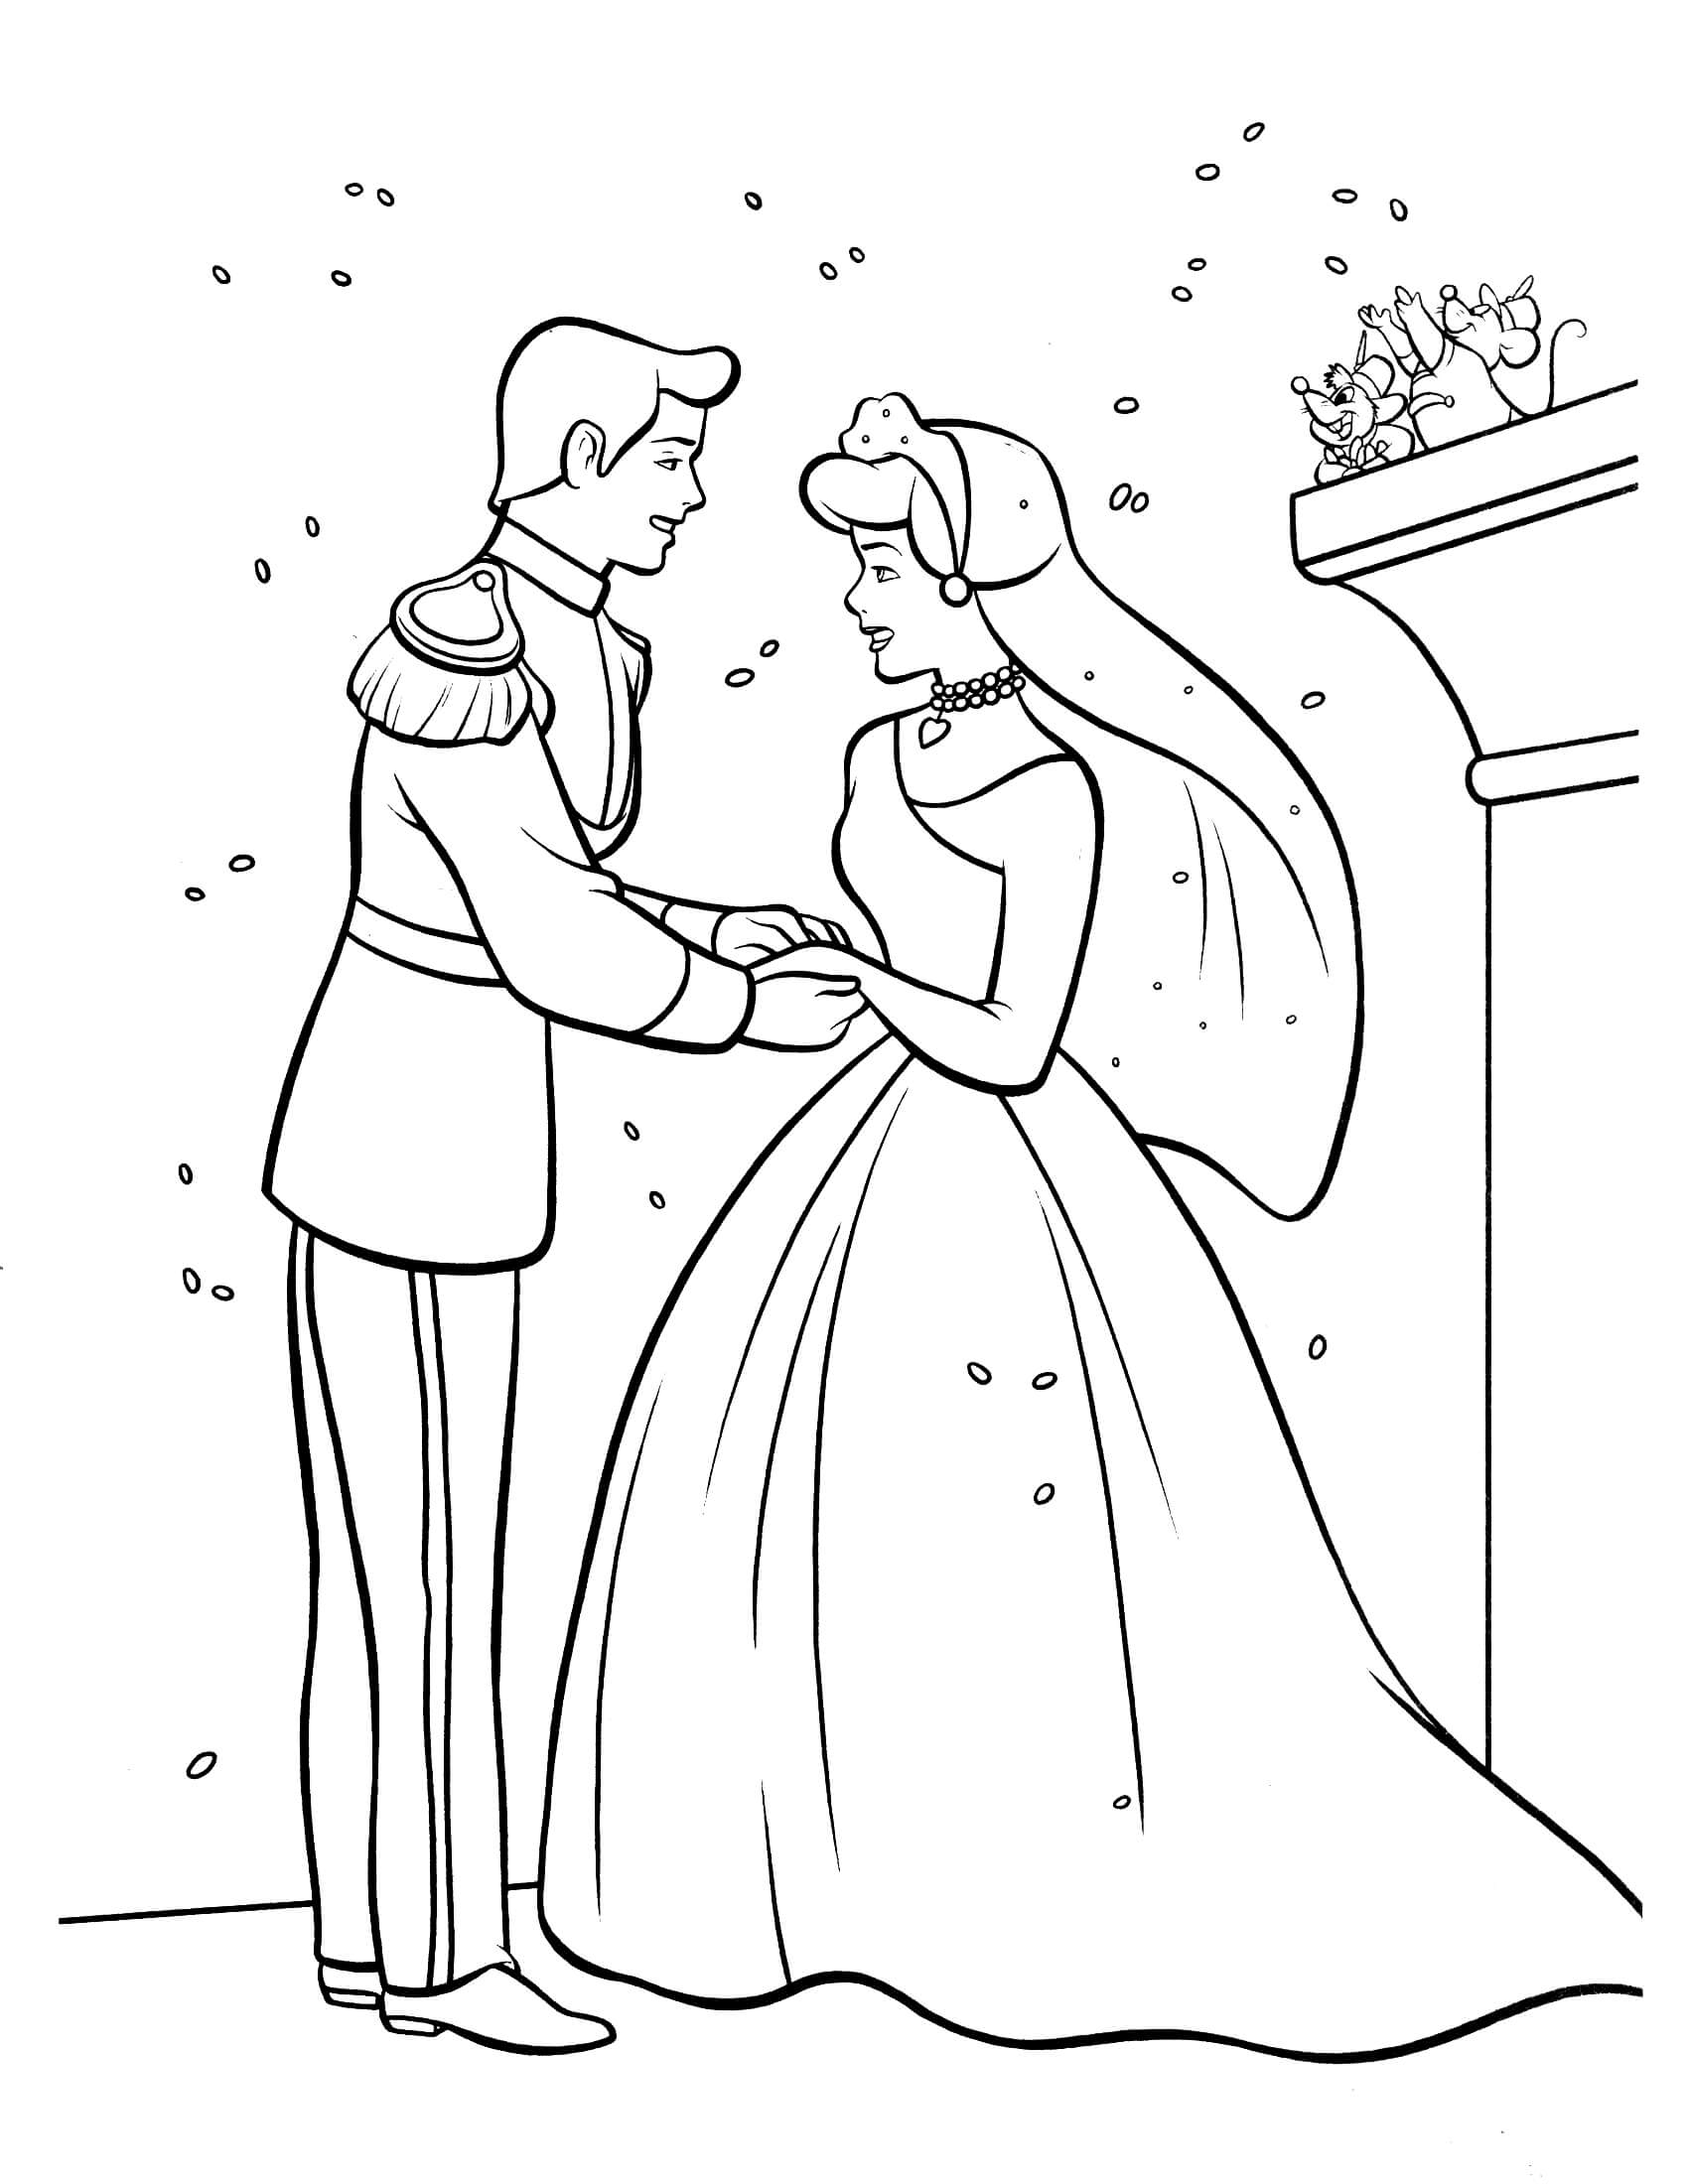 28 Cinderella Coloring Pages Printable | FREE COLORING PAGES